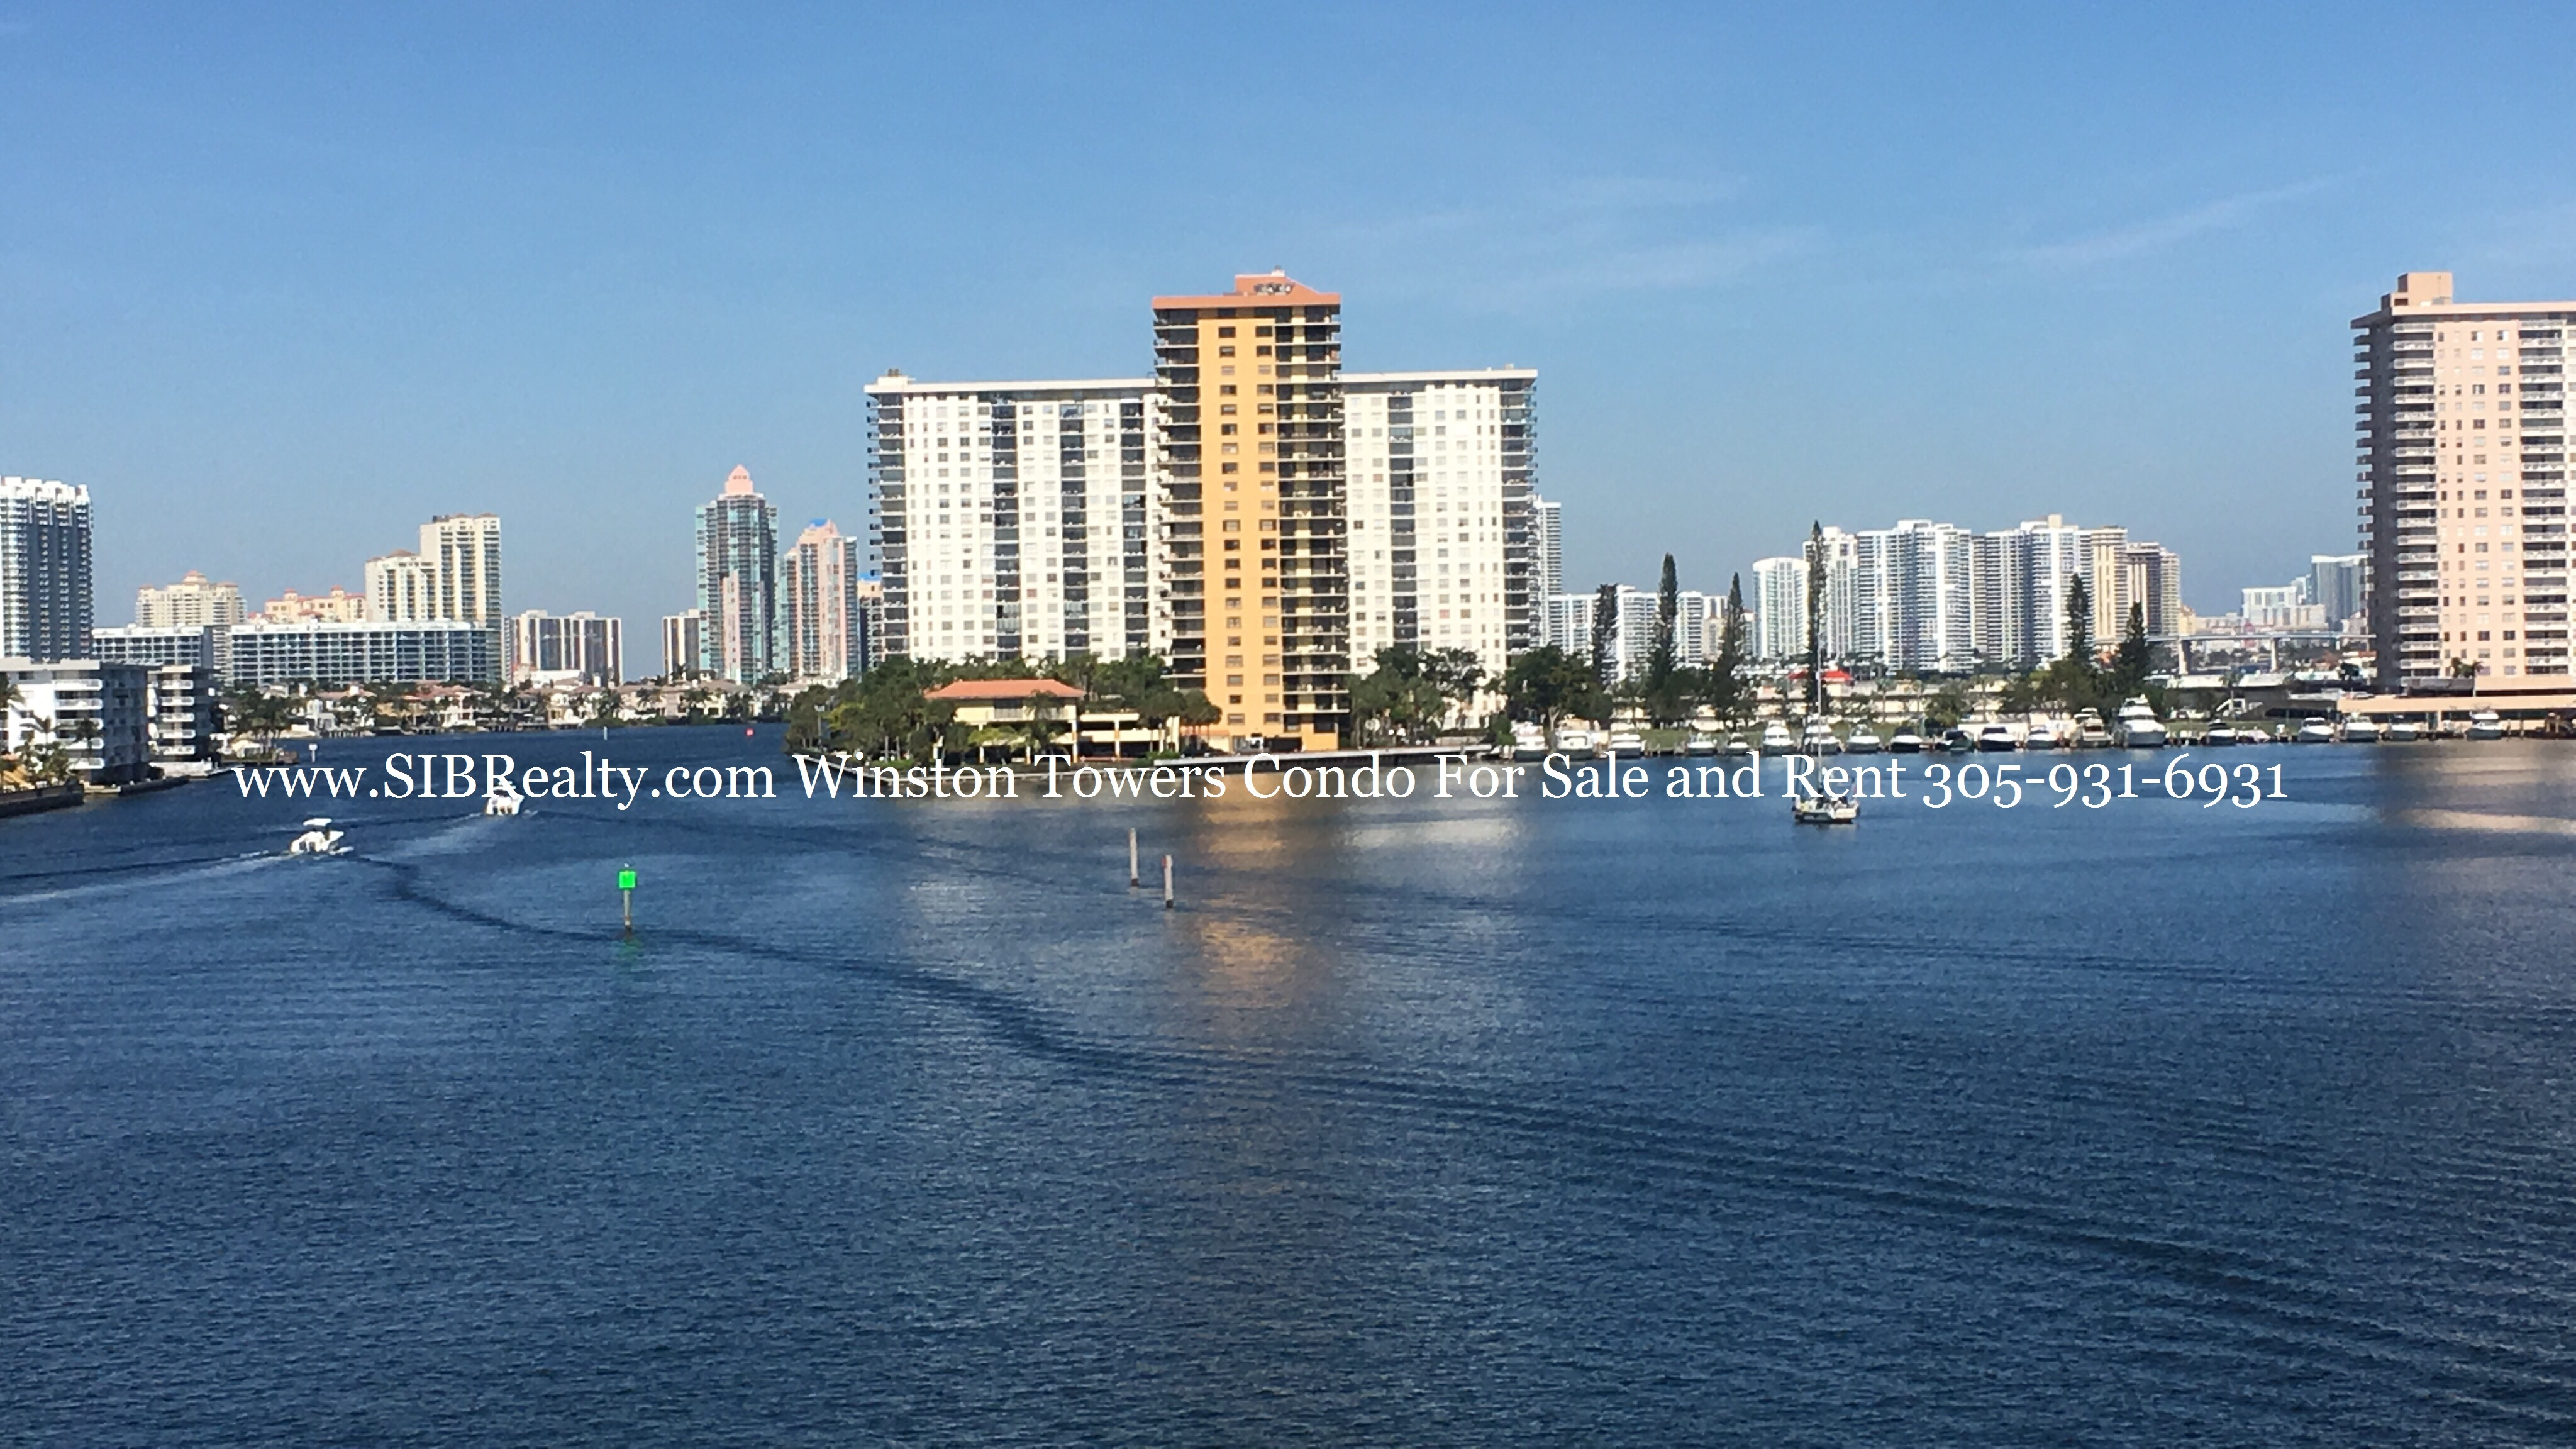 Buy Condo Winston Towers Sunny Isles Beach with Evelina Tsigelnitskaya Winston Towers condo Expert.